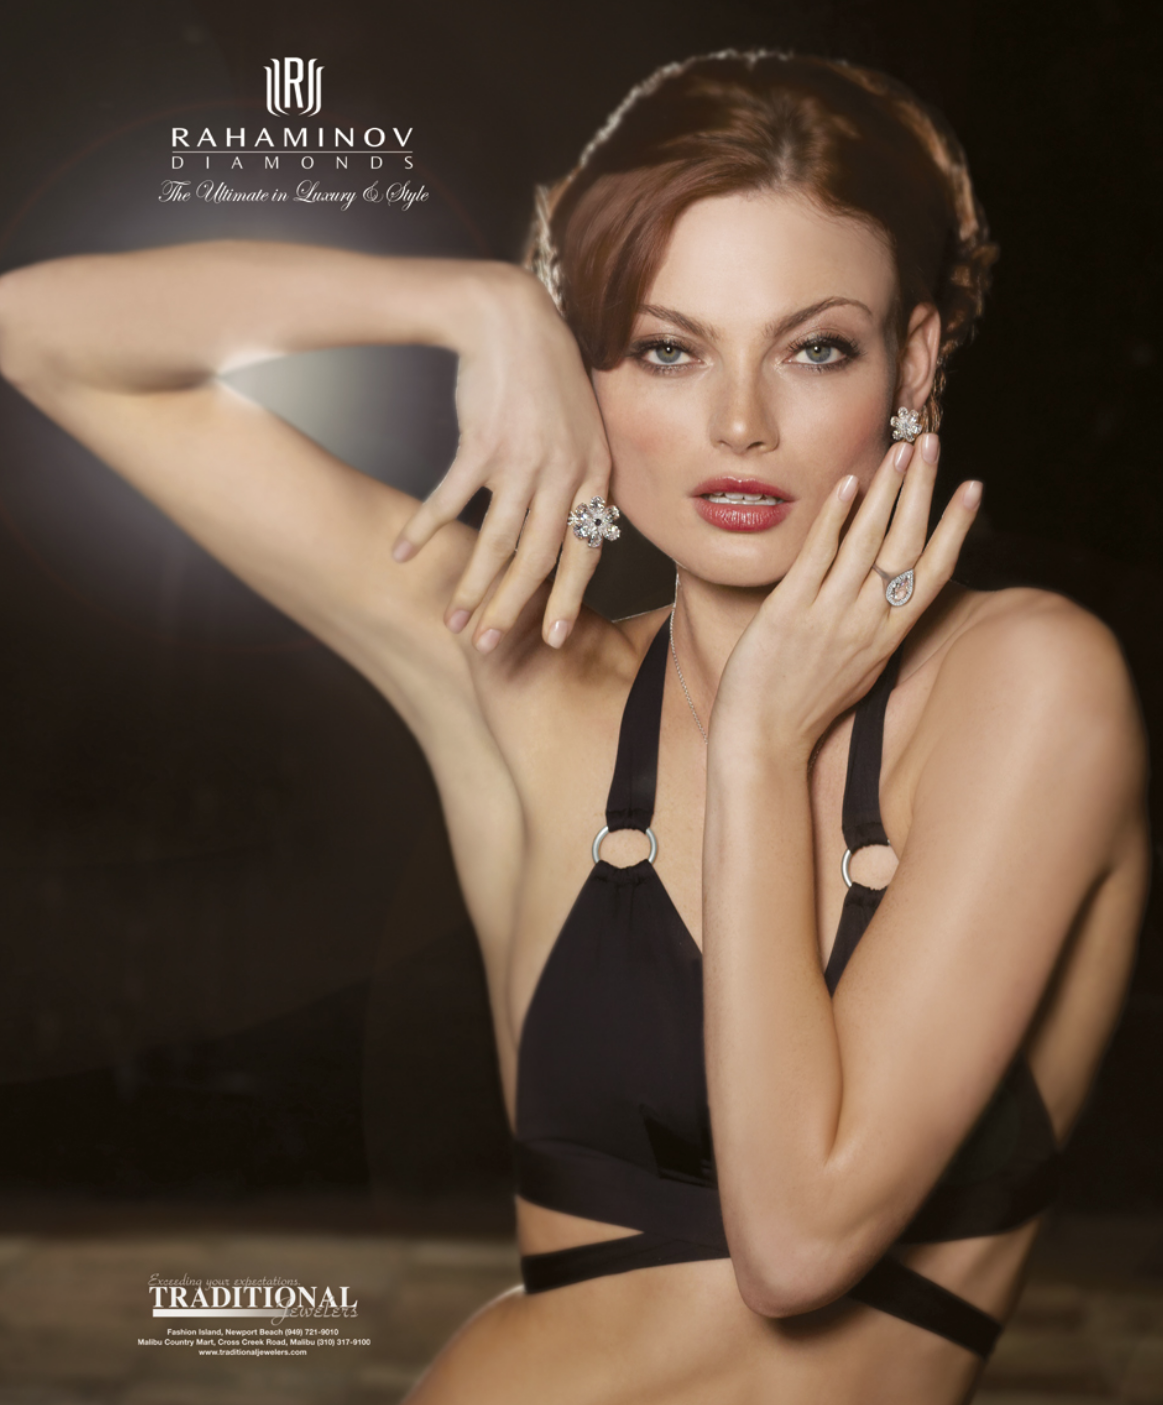 Rahaminov Diamonds Photography | Geoffrey Ragatz Photographer